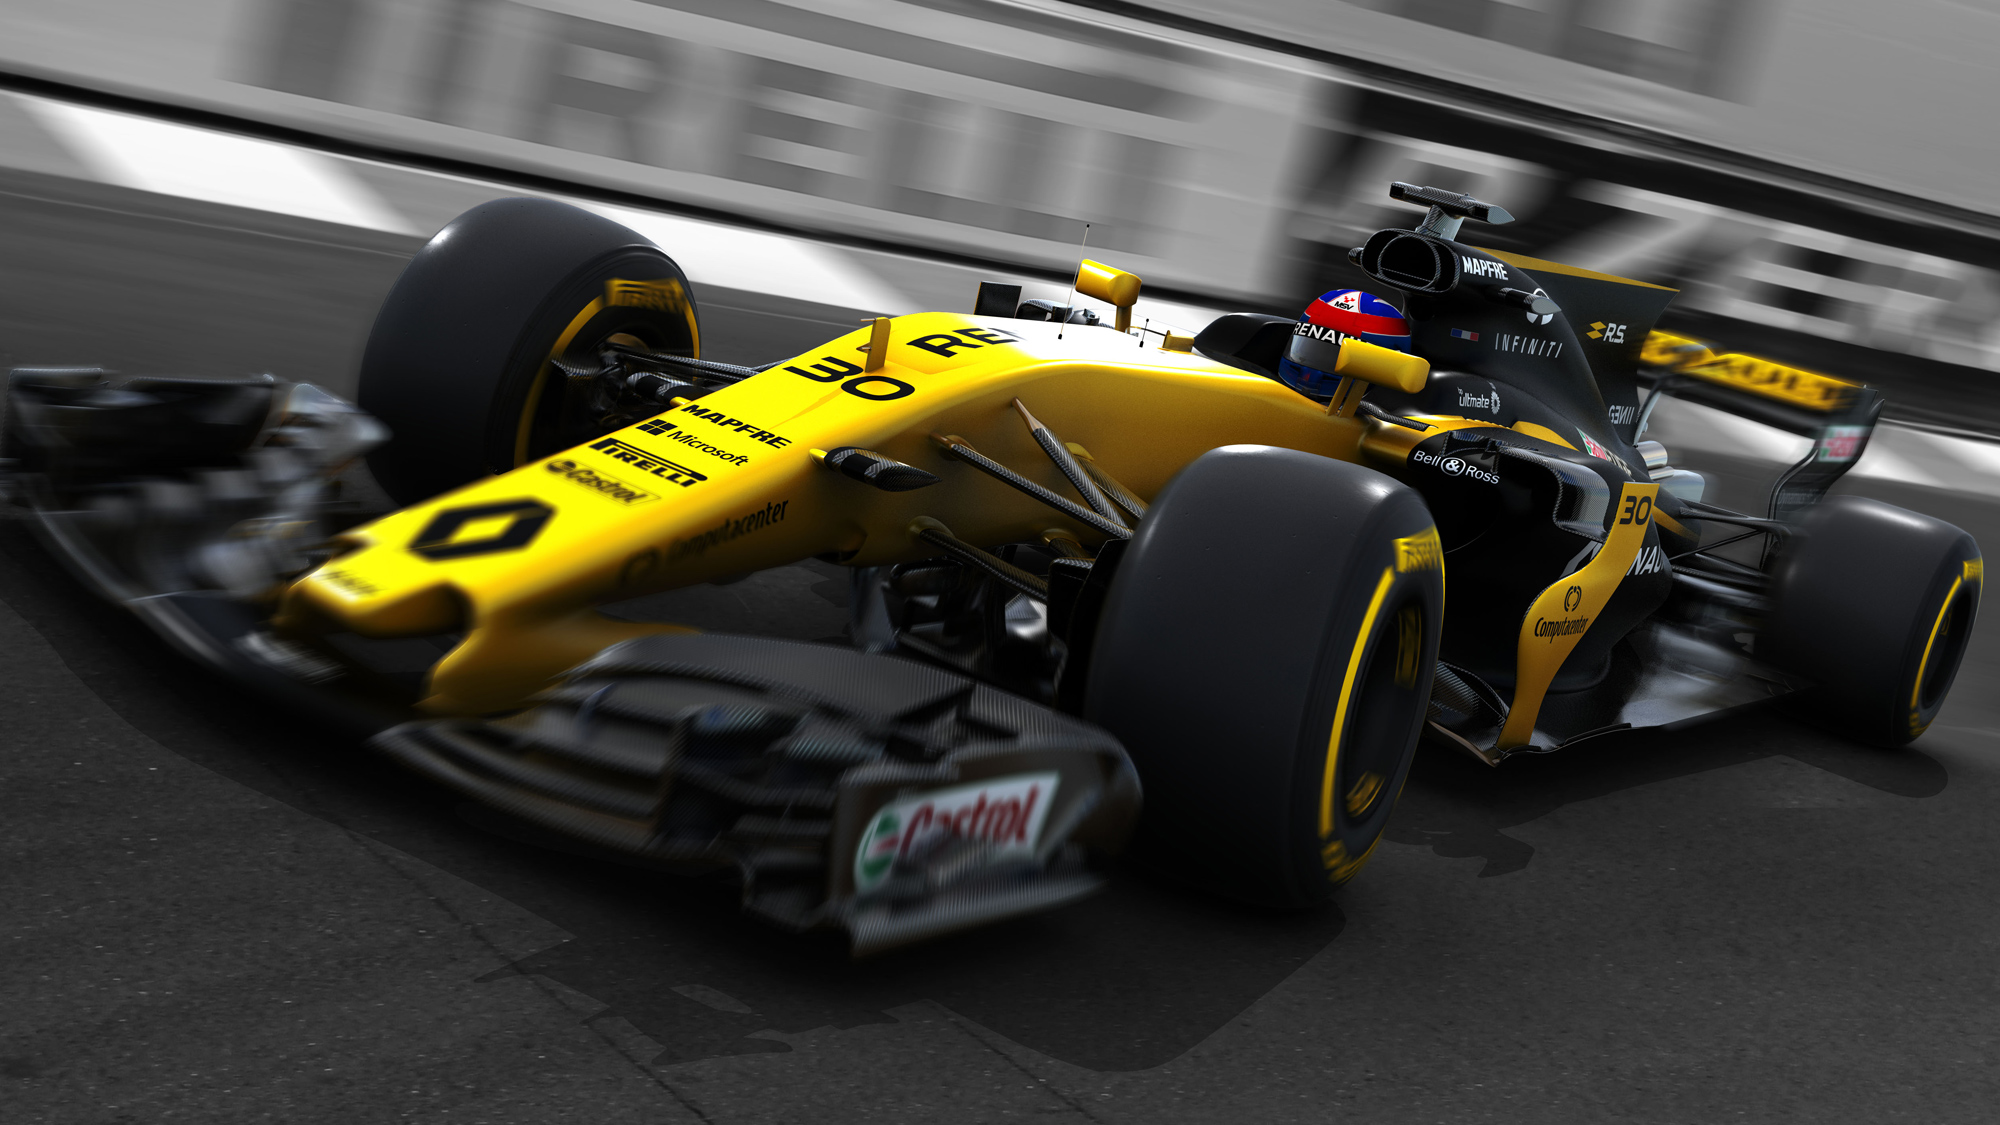 Renault-Sport-Formula-1-Photoscene-Action-2.jpg